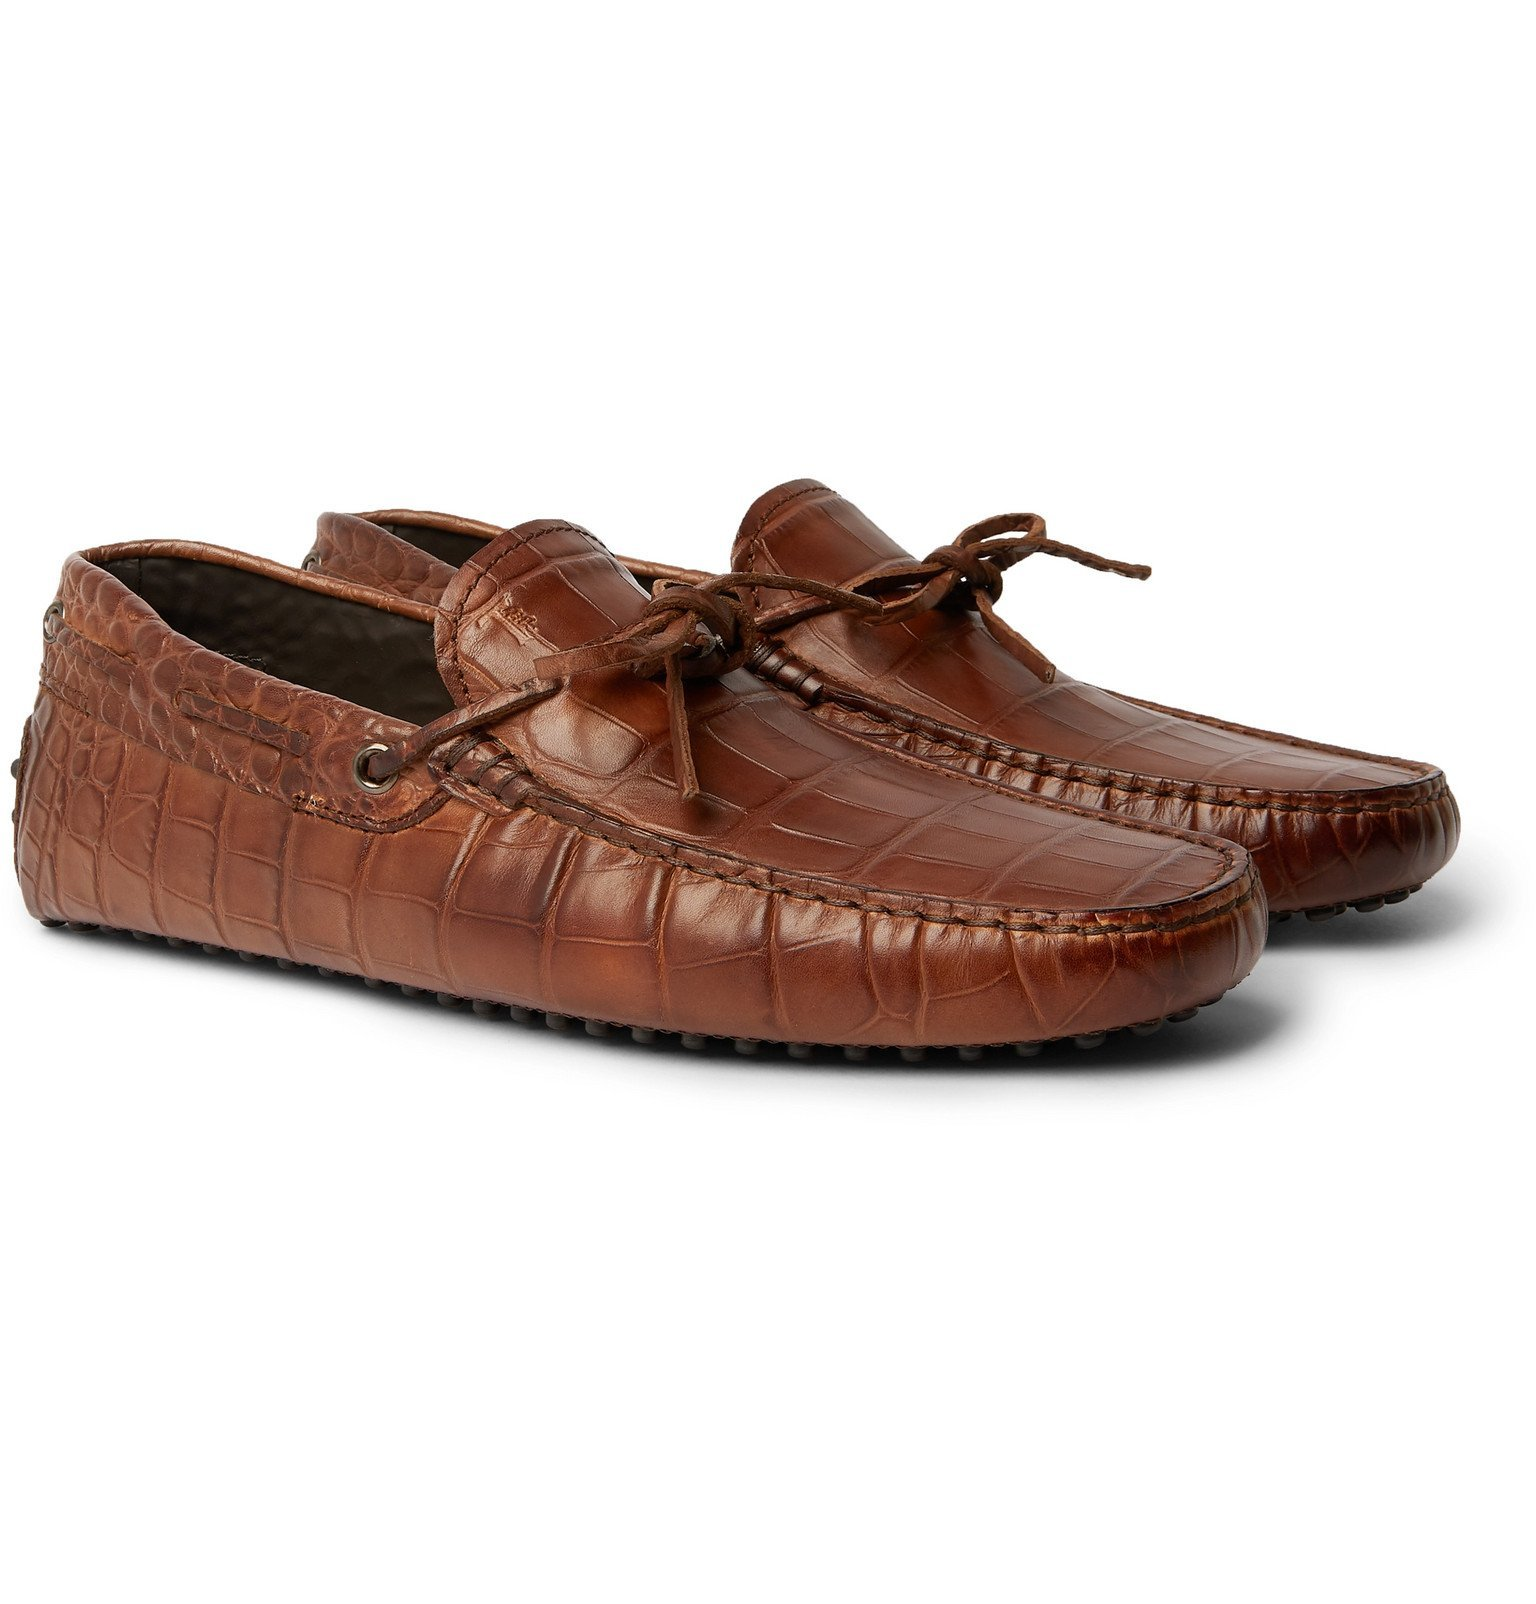 Tod's - Gommino Croc-Effect Leather Driving Shoes - Brown